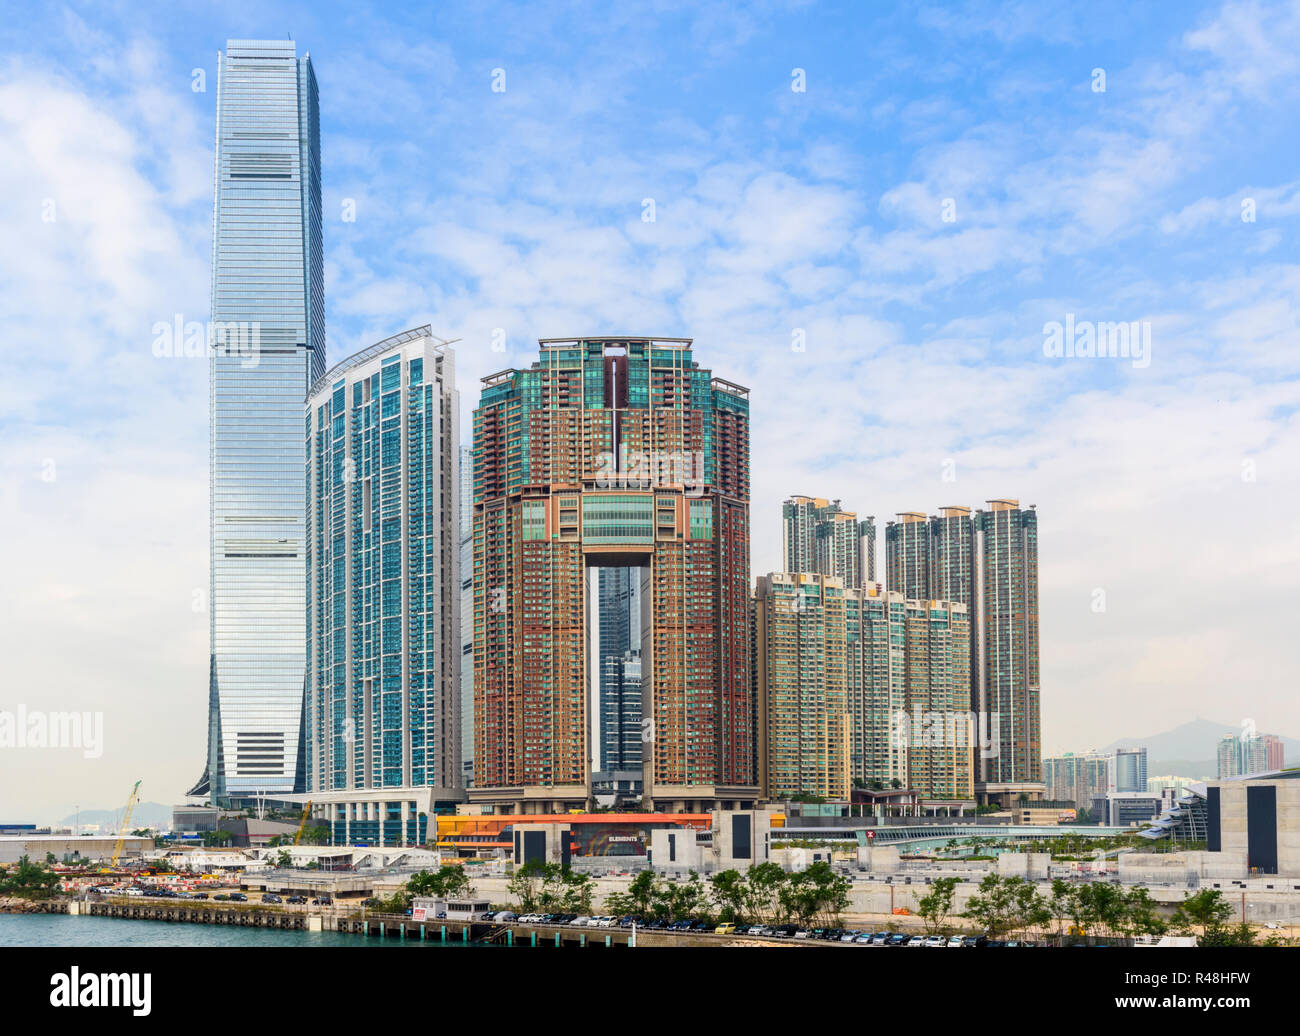 Hong Kong development of Union Square including the International Commerce Centre, The Harbourside and The Arch, West Kowloon, Hong Kong - Stock Image